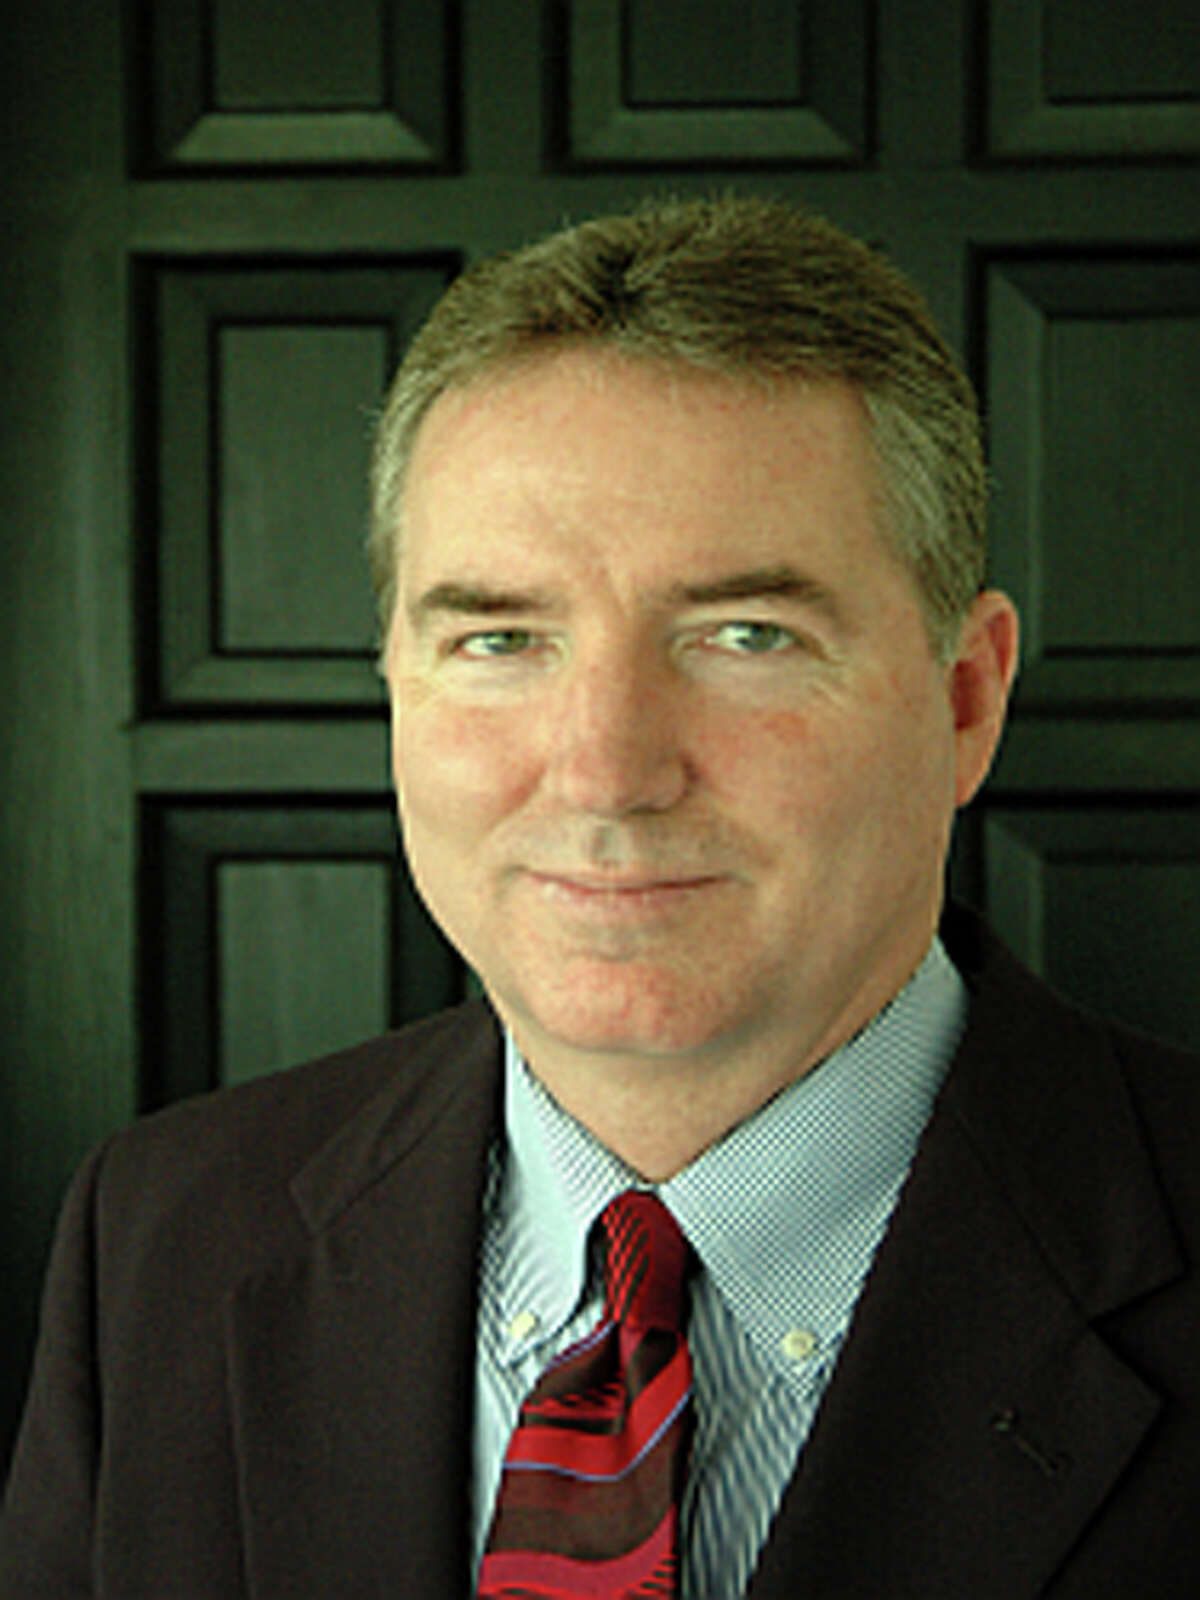 """This undated image provided by the Aransas County, Texas Court-at-Law webpage shows Aransas County Judge William Adams. The Court-at-Law Judge told Corpus Christi television station KZTV on Wednesday, Nov. 2, 2011, a YouTube video that shows him lashing his then-16-year-old daughter with a belt """"looks worse than it is."""" (AP Photo/Aransas County)"""